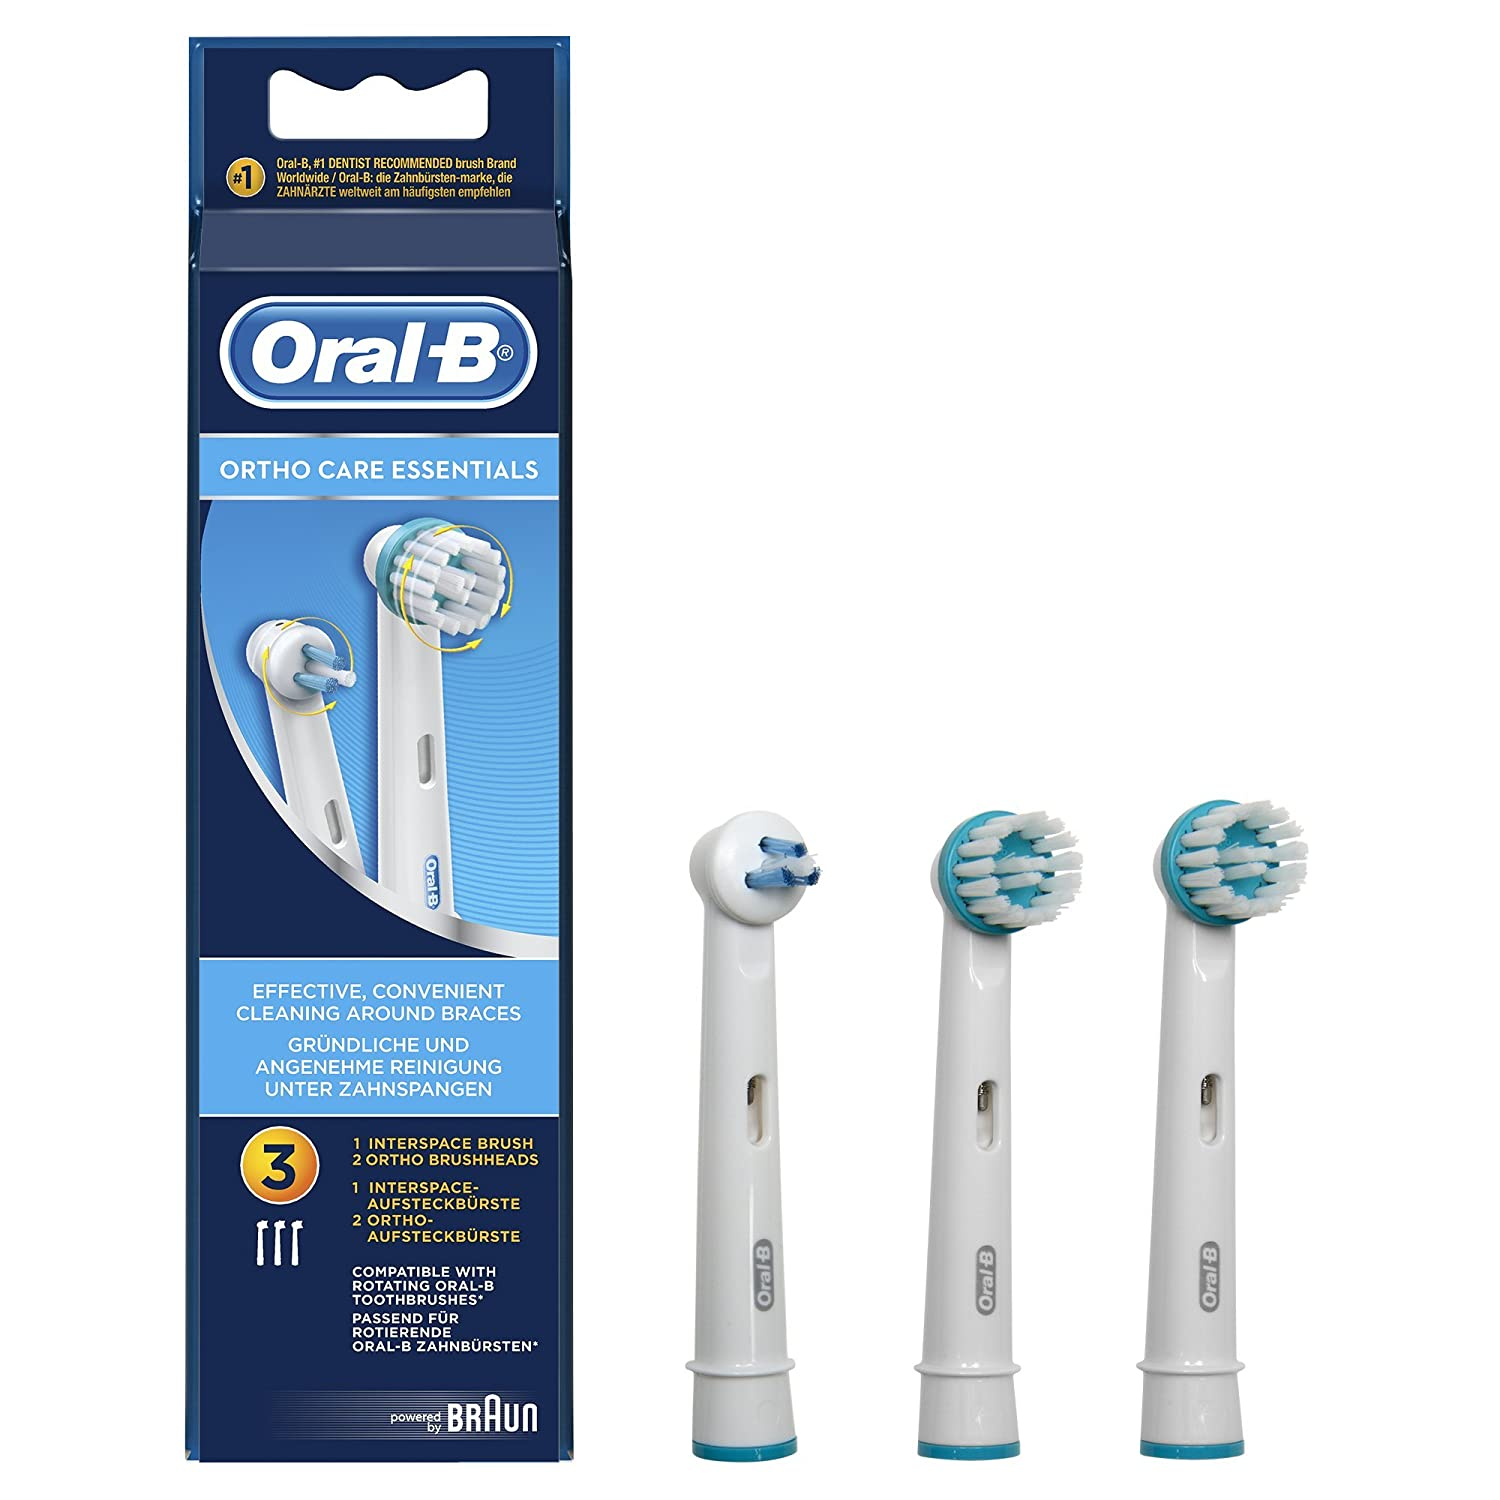 Oral b testine di ricambio ortho care essential kit 3 for Oral b porta testine